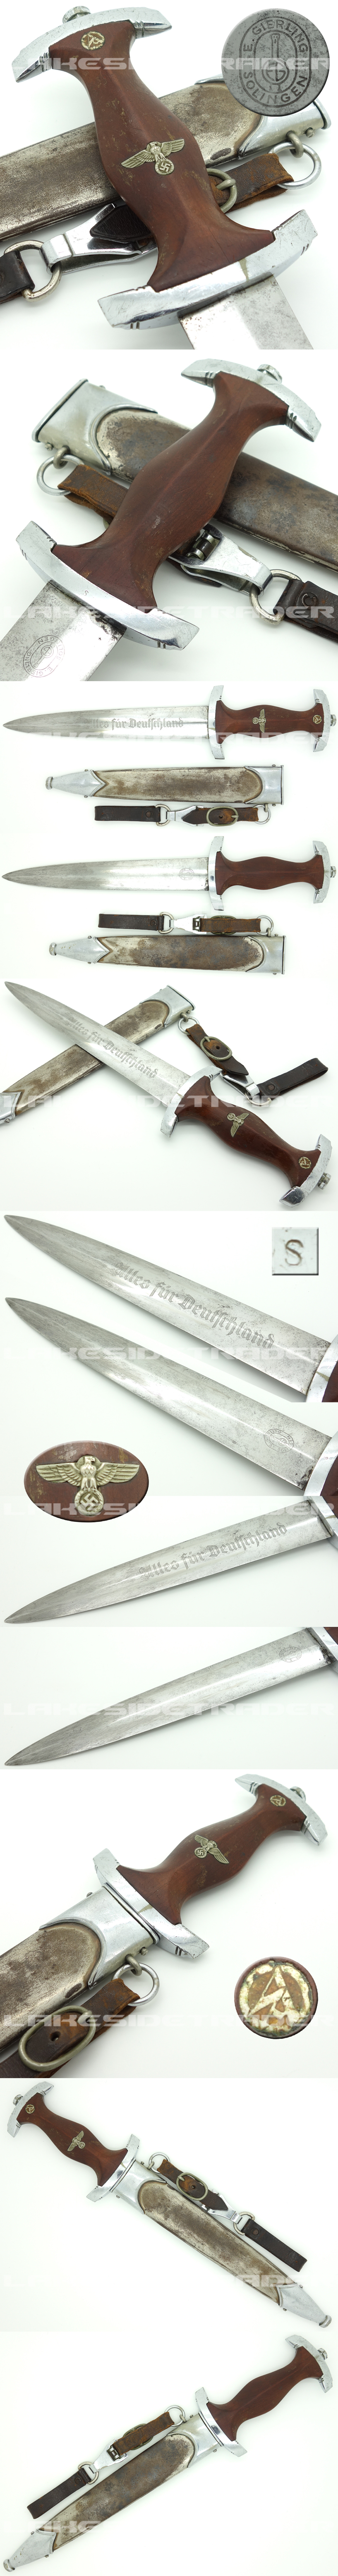 Unique, Rare and Early - SA Dagger by E. Gierling